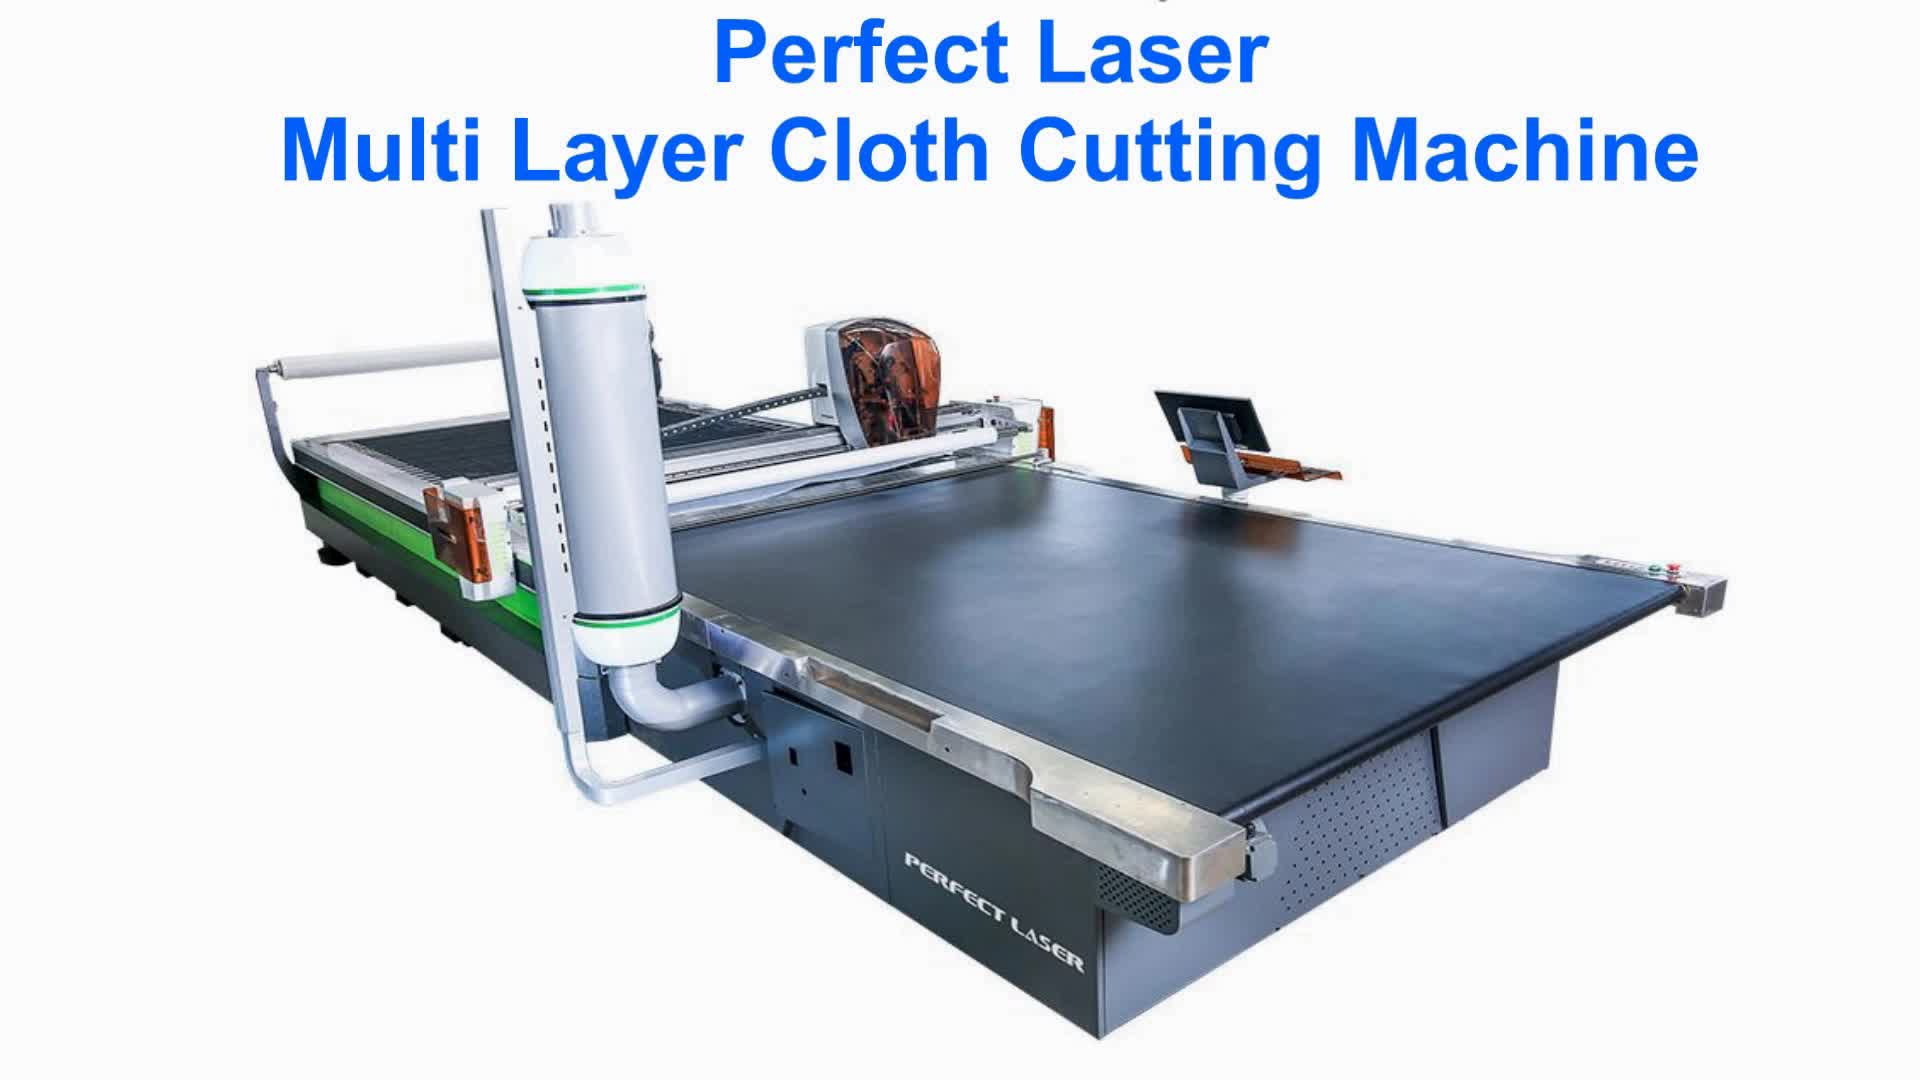 Fabric Oscillating Knife Cutting Machine For Multi Layers ...